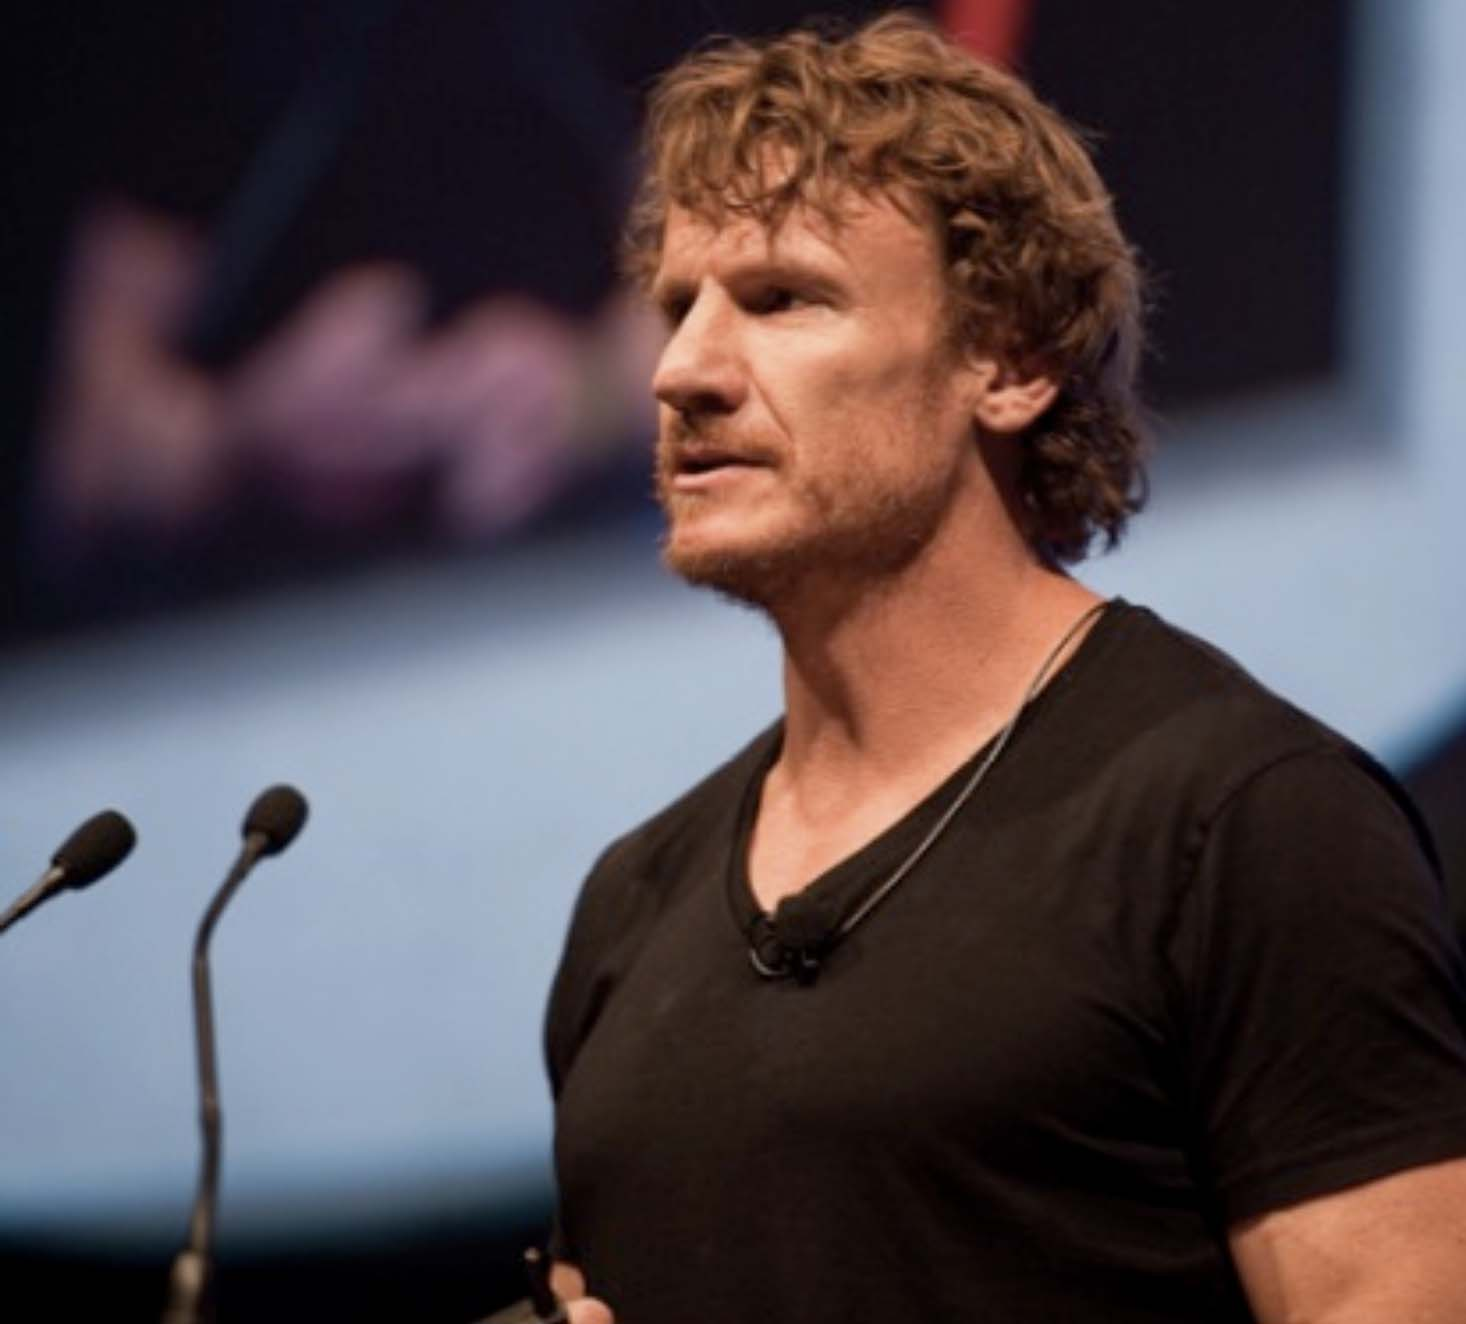 Shock for Publicis as Aussie expat global chief creative officer Nick Law set to depart for Apple